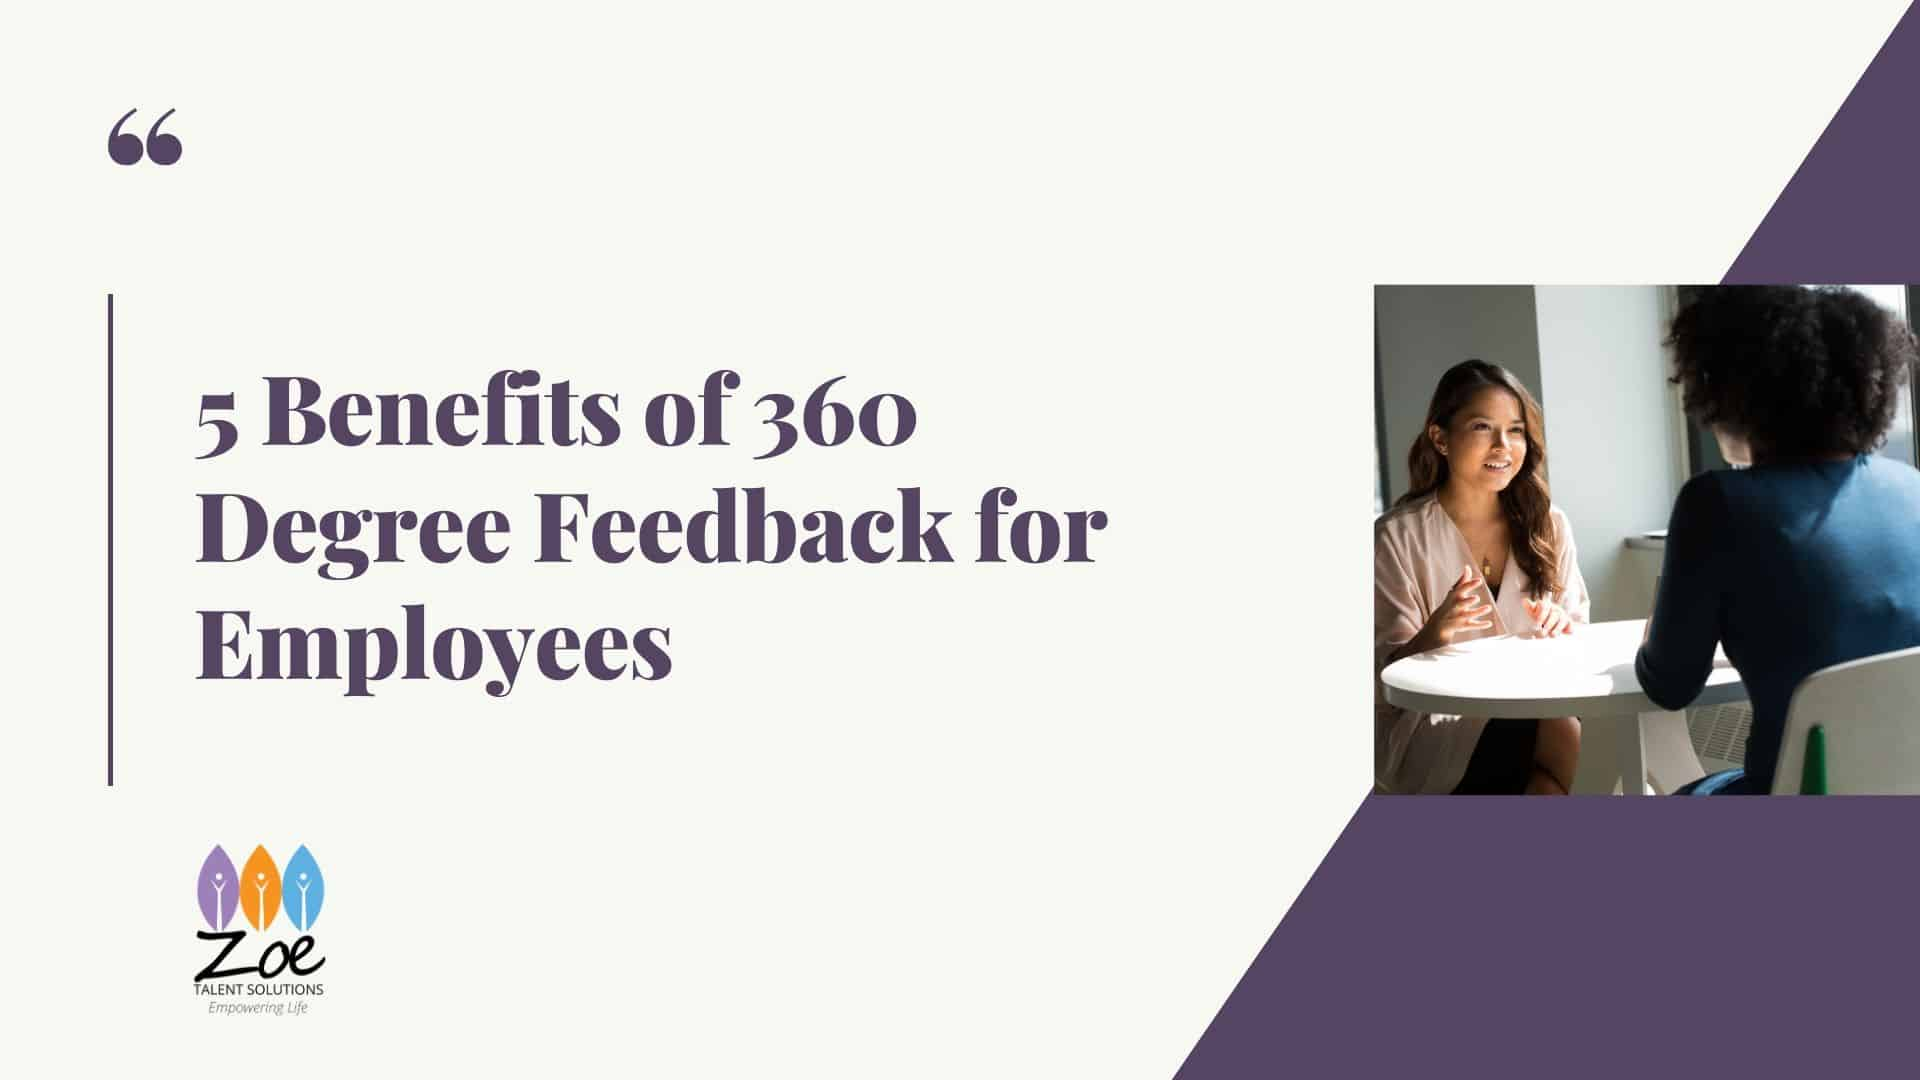 5 Benefits of 360 Degree Feedback for Employees